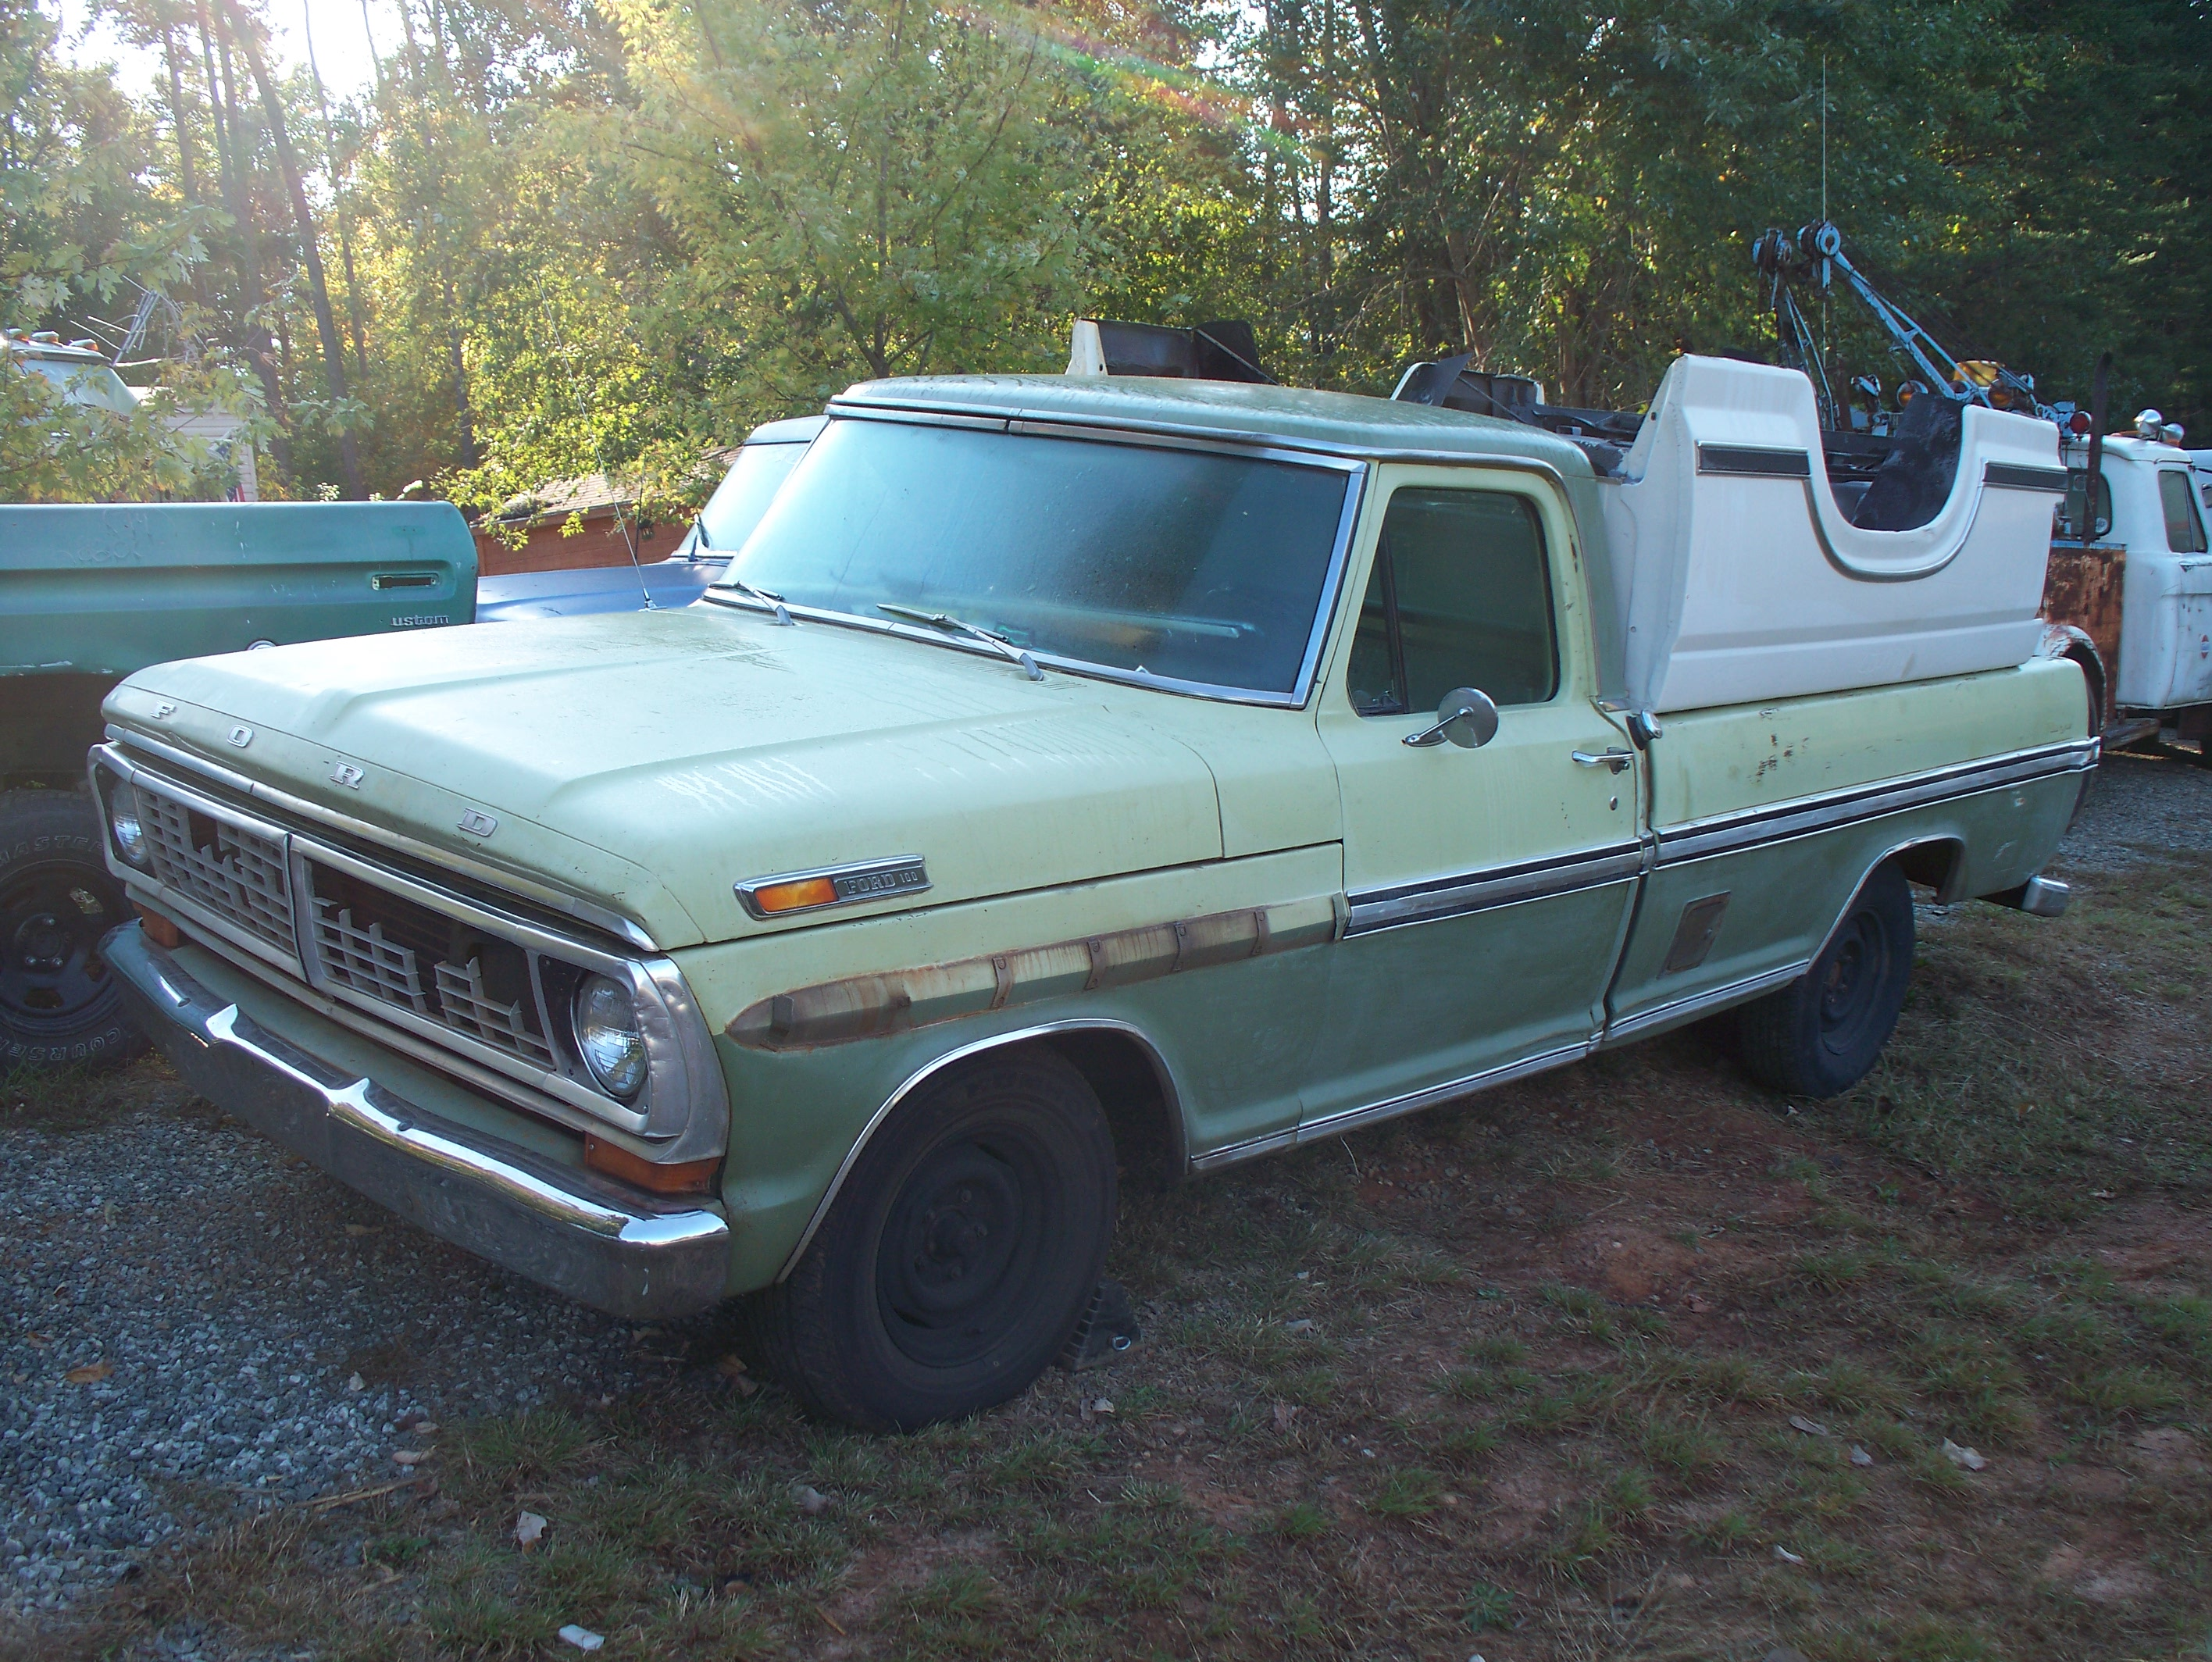 1970 Long Bed, 390 P/S with clean AZ Sheet Metal,, and That is a very clean  Short Bed for a 83/86 truck as well